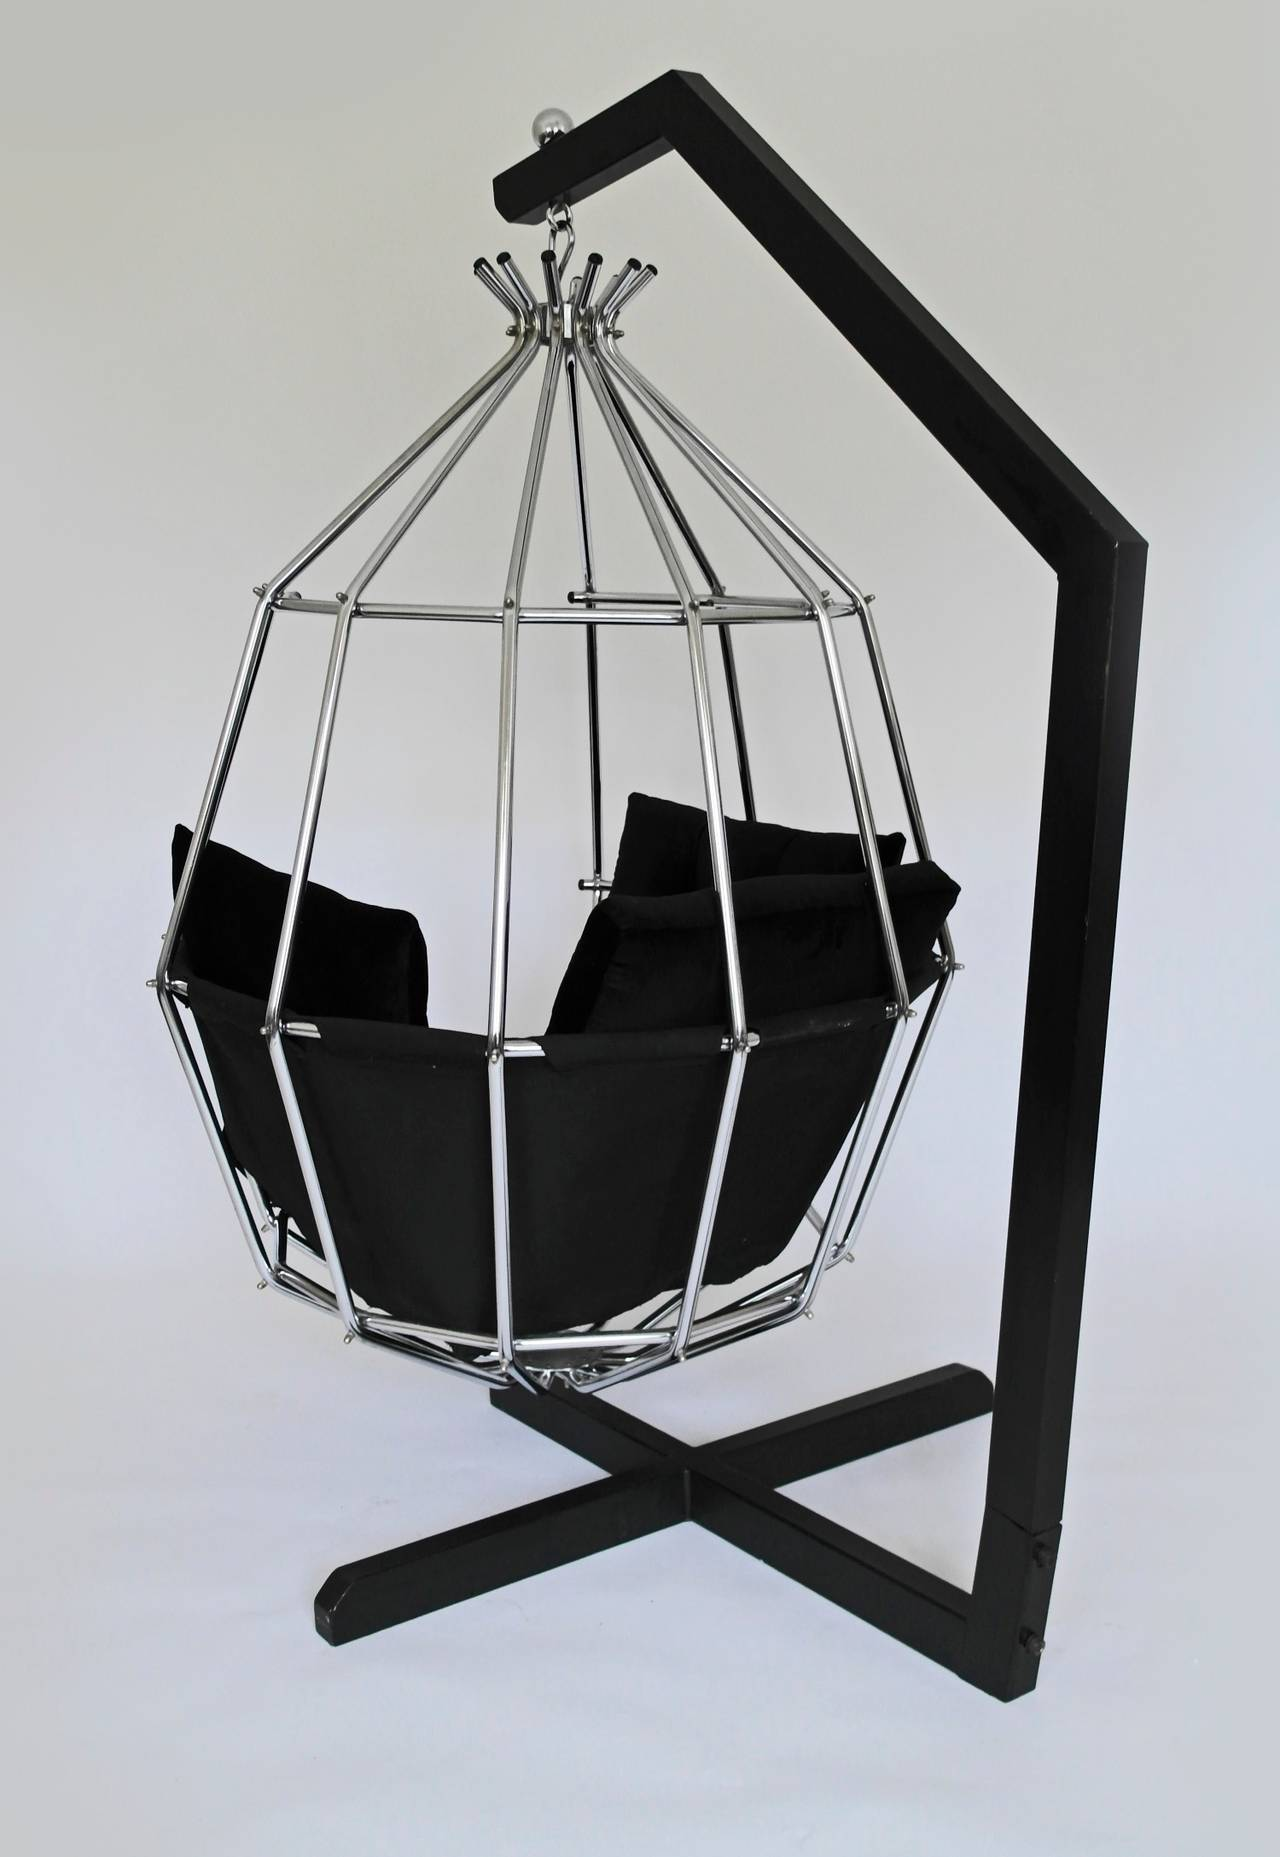 Retro 1970s Hanging Birdcage Chair by Ib Arberg, Arbre Designs Parrot Chair 4